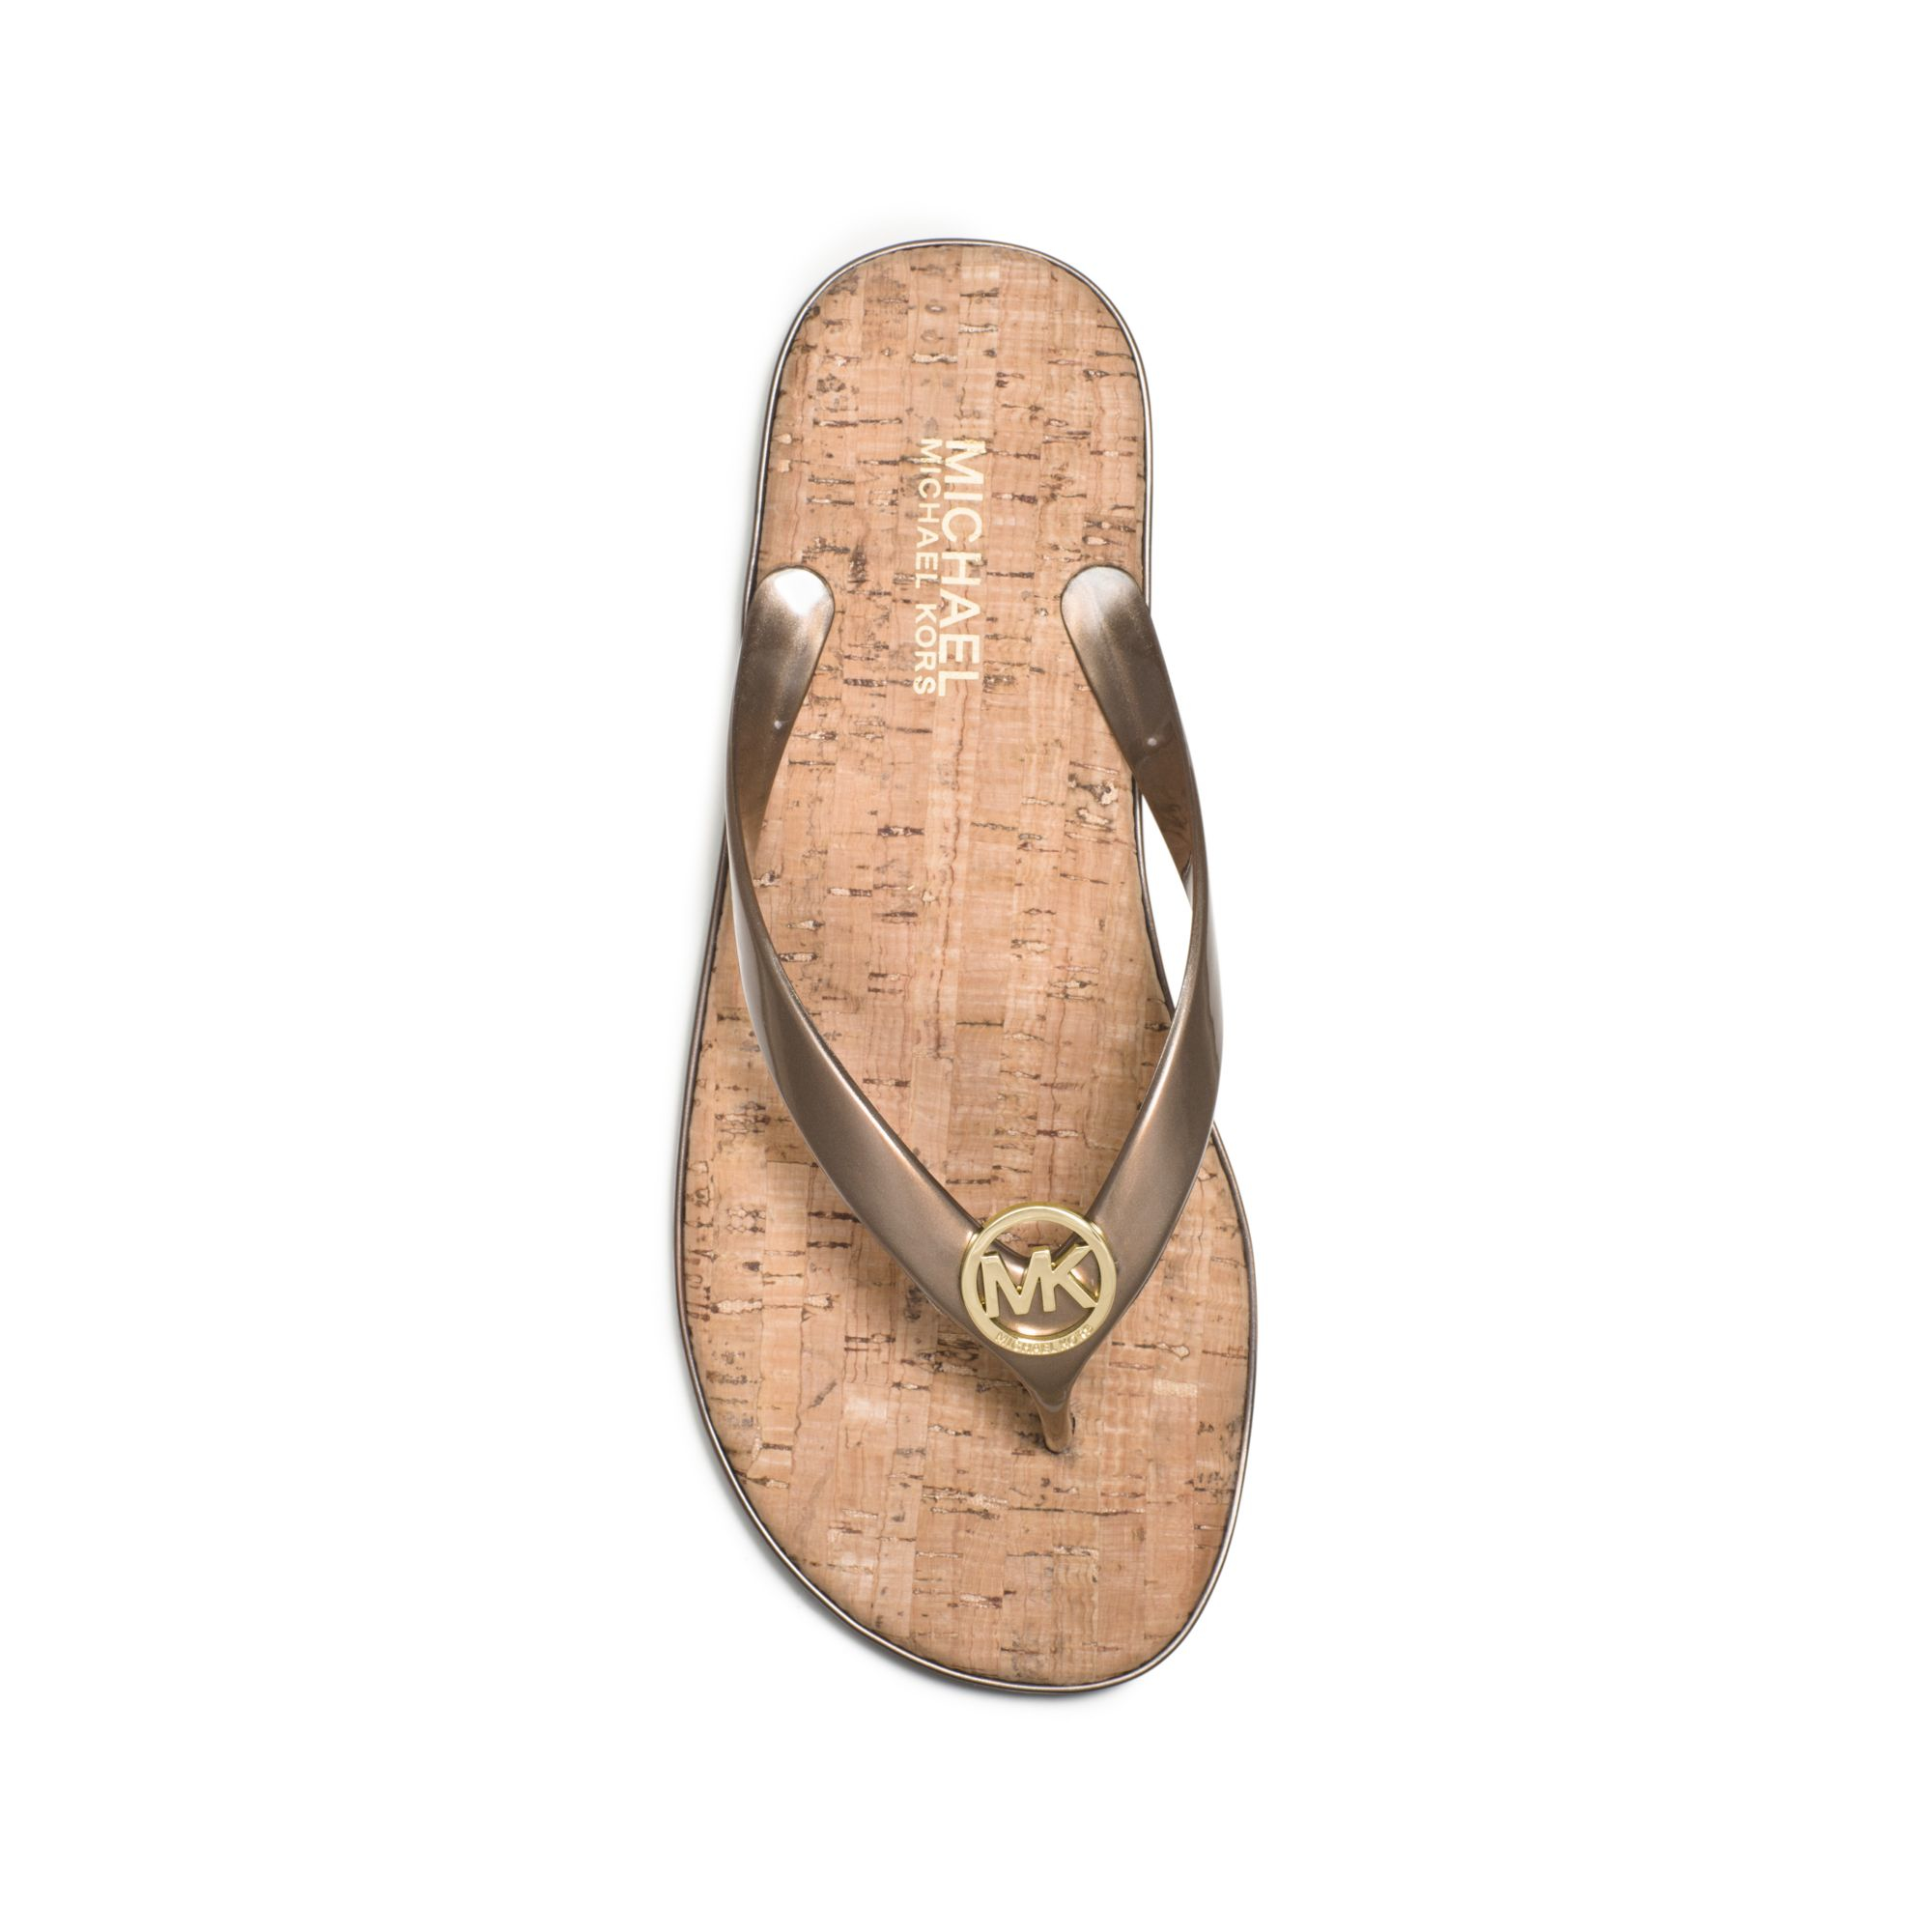 Lyst - Michael Kors Jet Set Cork Flip-Flop In Metallic-8201